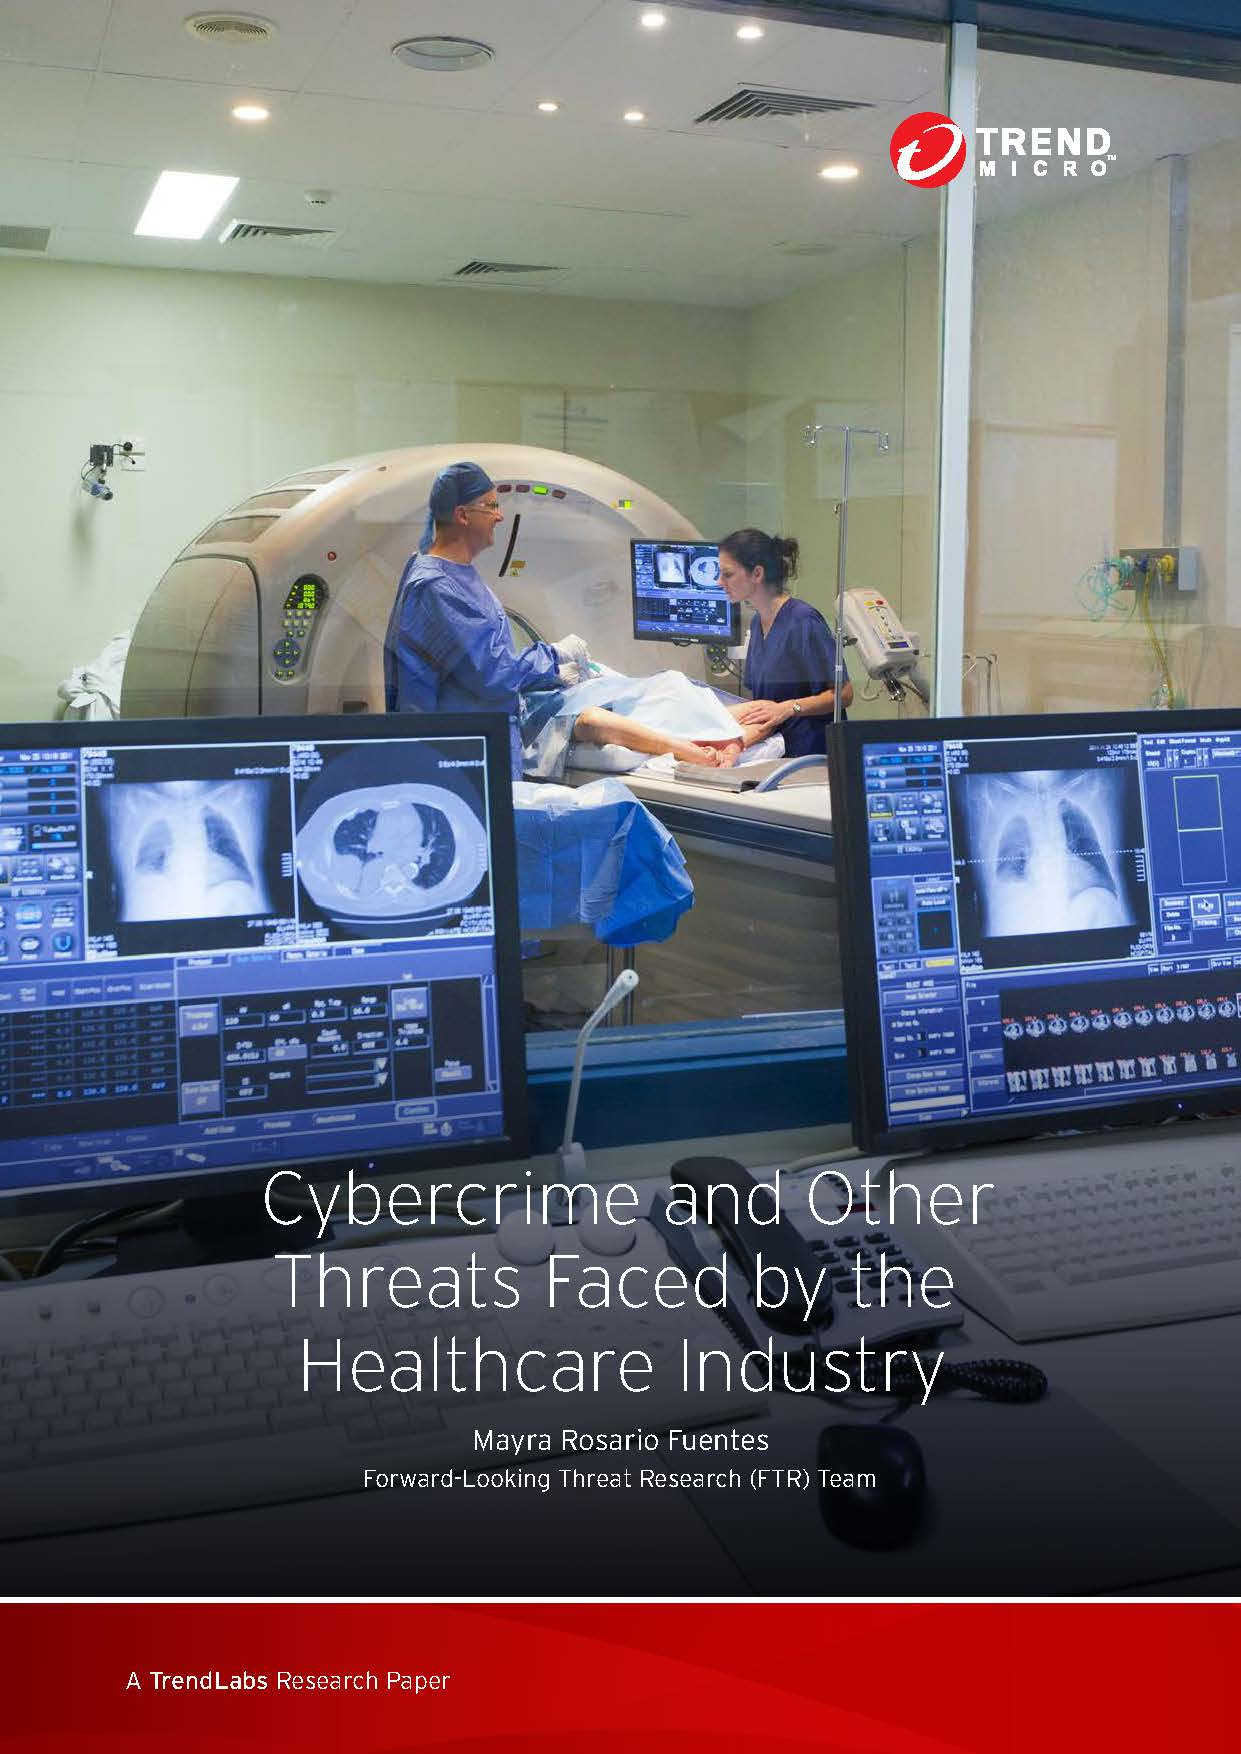 Cybercrime and Other Threats Faced by the Healthcare Industry